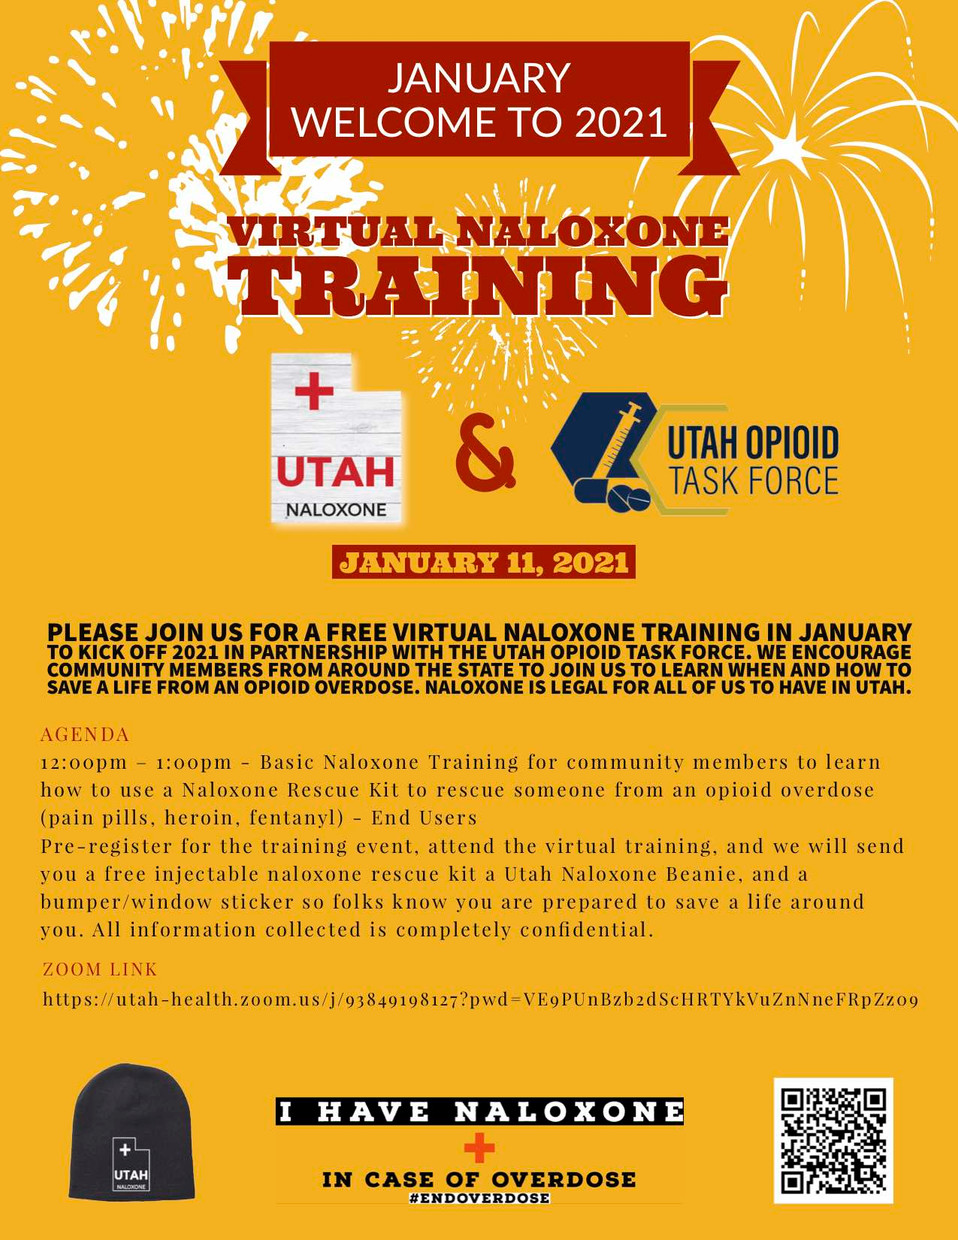 Utah Opioid Taskforce and Naloxone Training